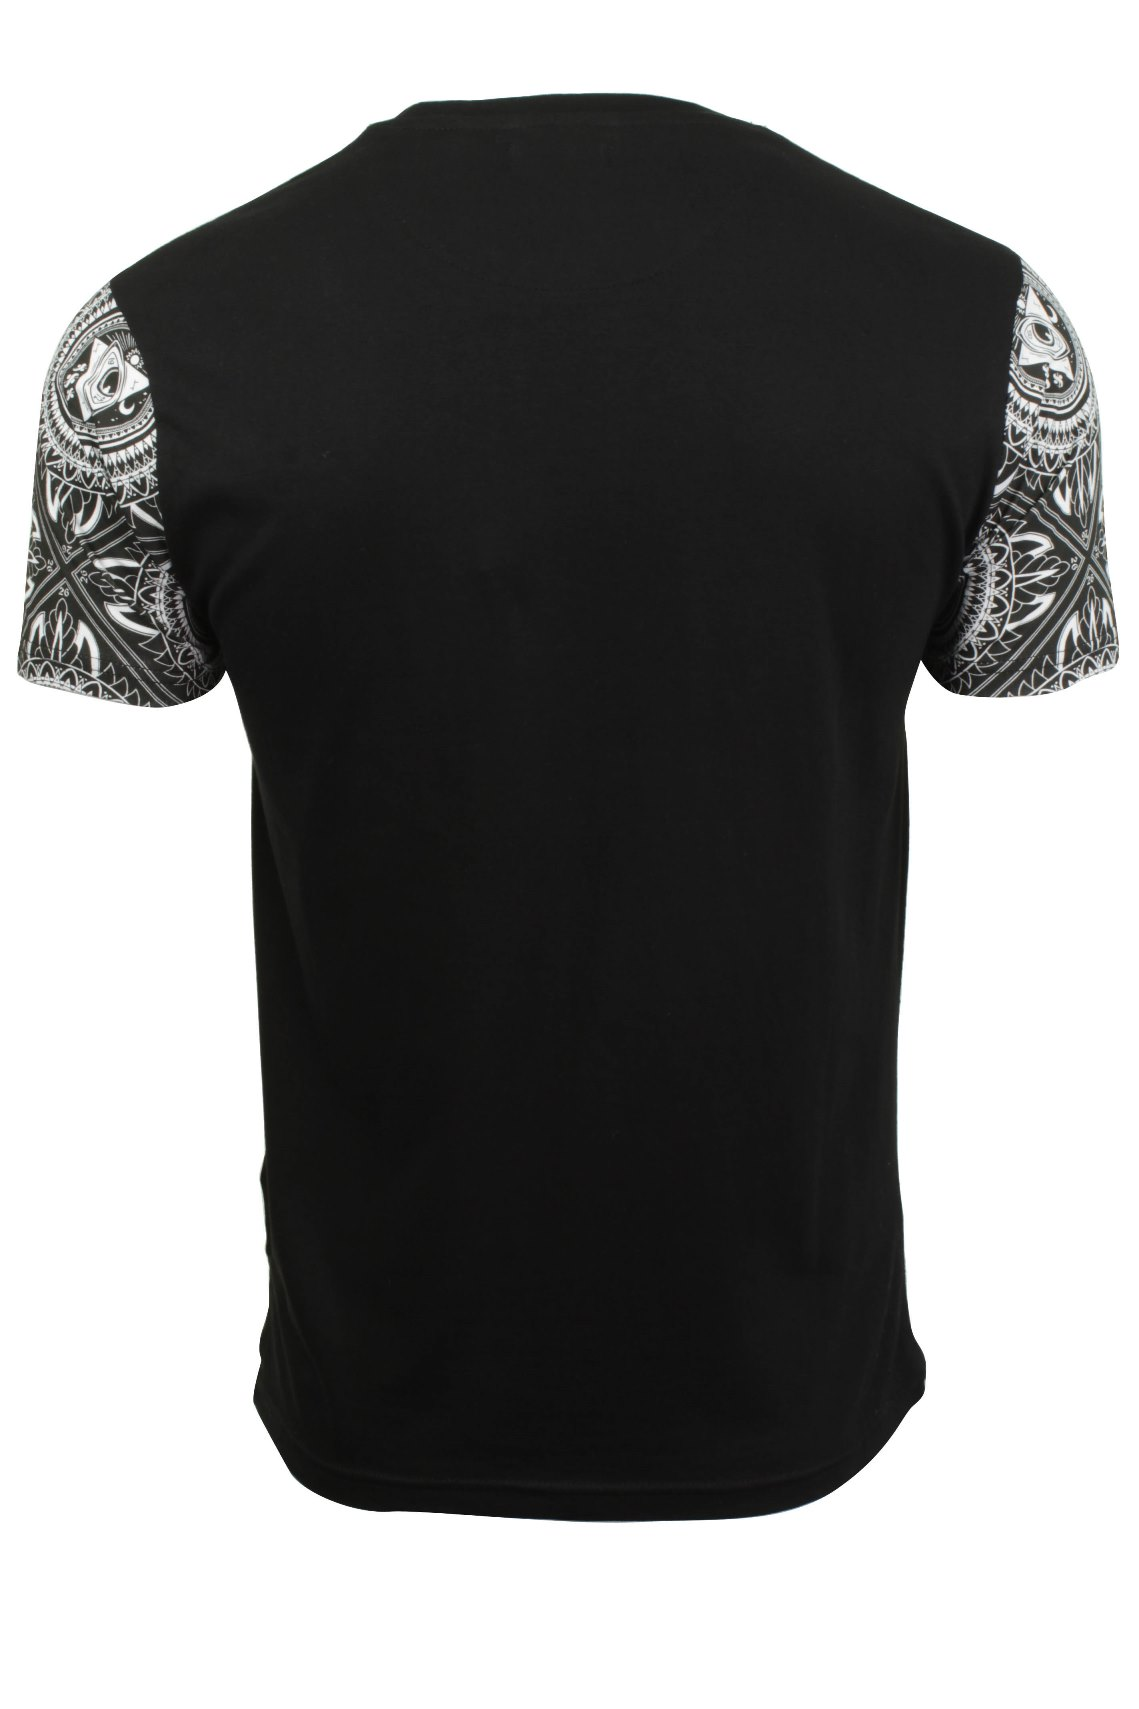 Mens-T-Shirt-by-Brave-Soul-039-Limonov-039-Short-Sleeved